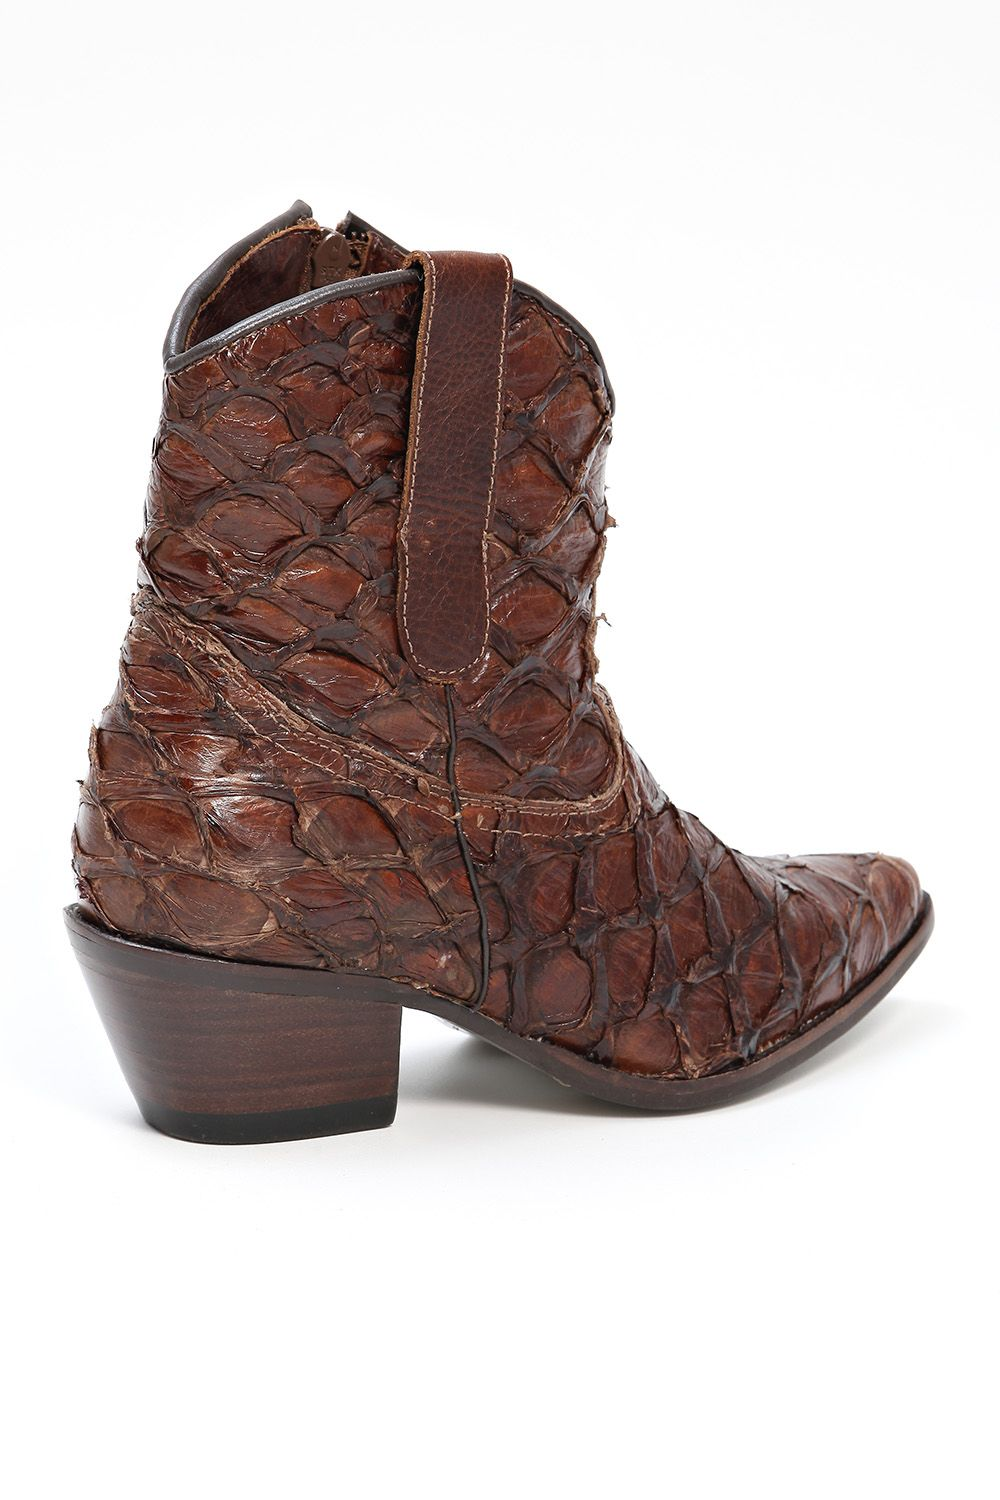 Bota Beatriz Seal Brown - Bléque